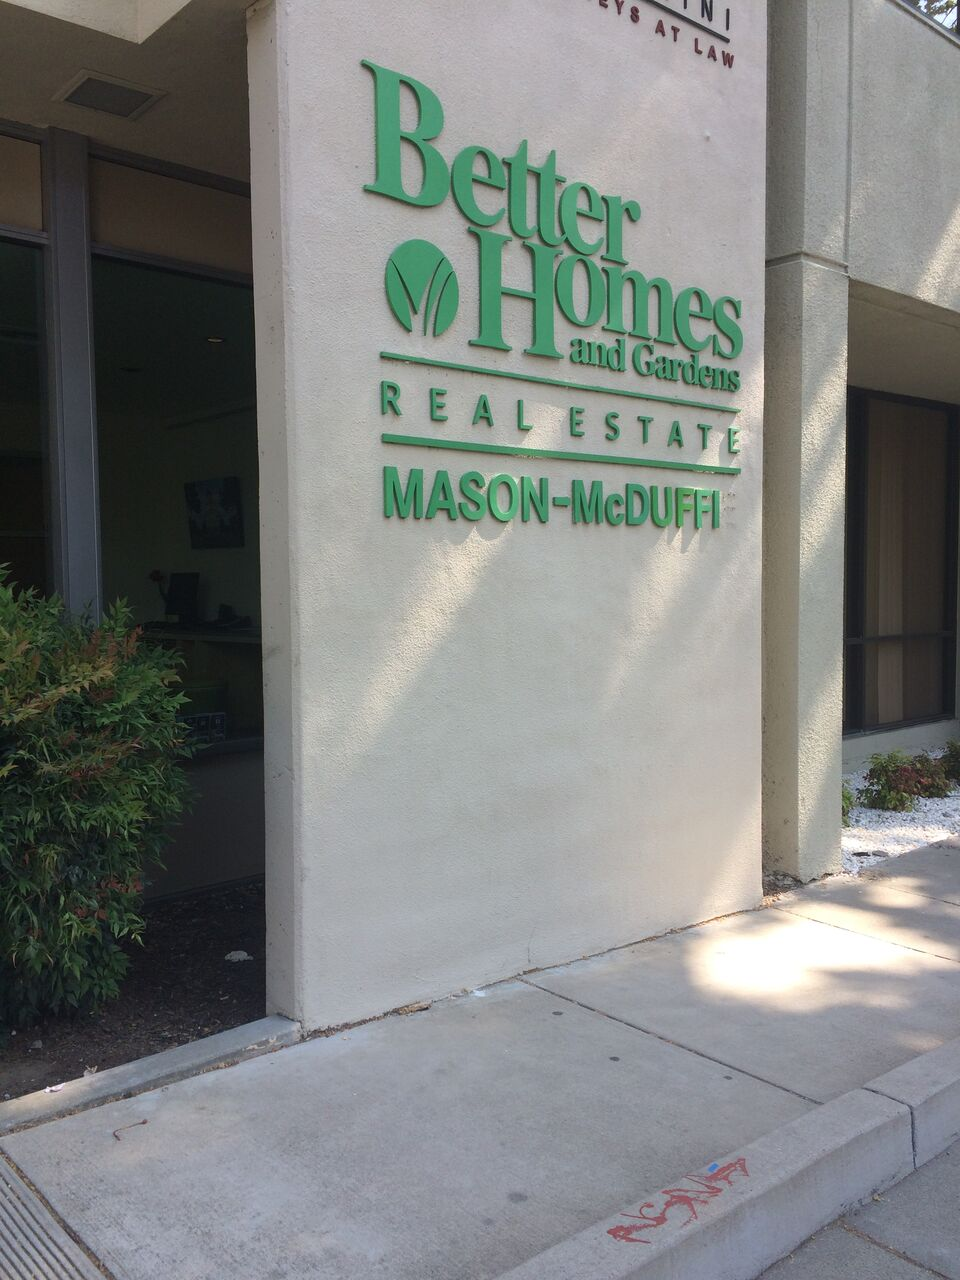 Better homes and gardens imagine plants interior plant services maintenance in sacramento for Sacramento home and garden show 2017